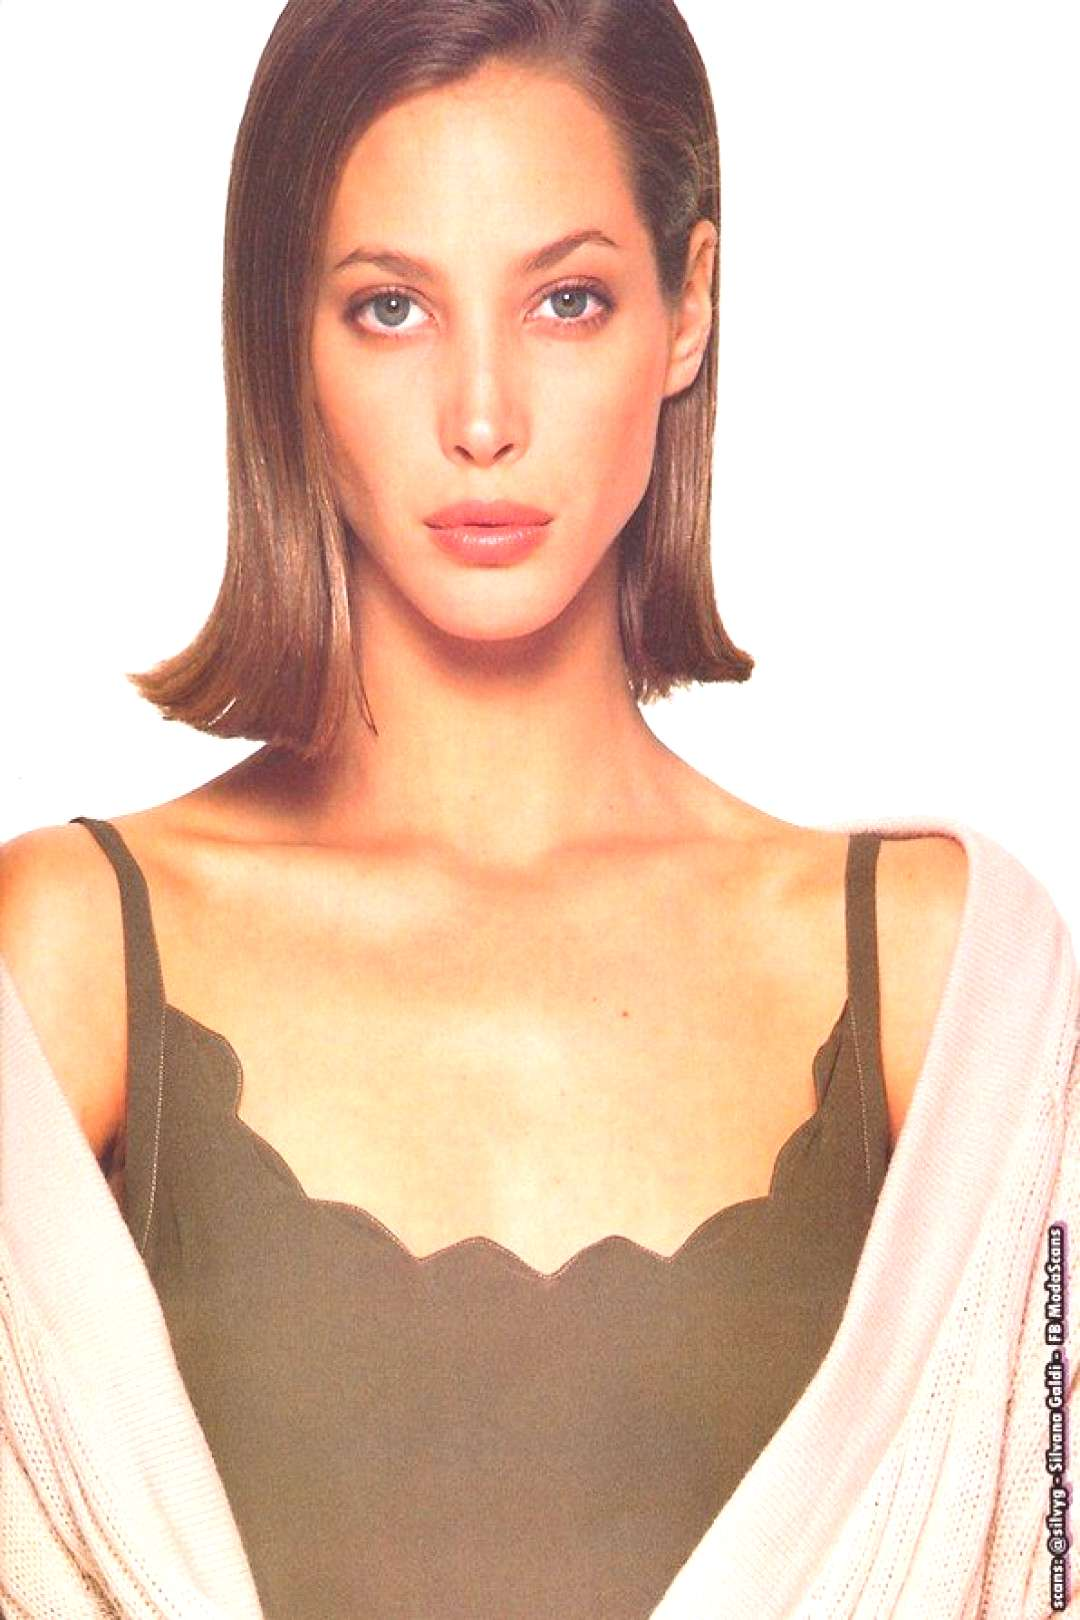 Christy Turlington's photos